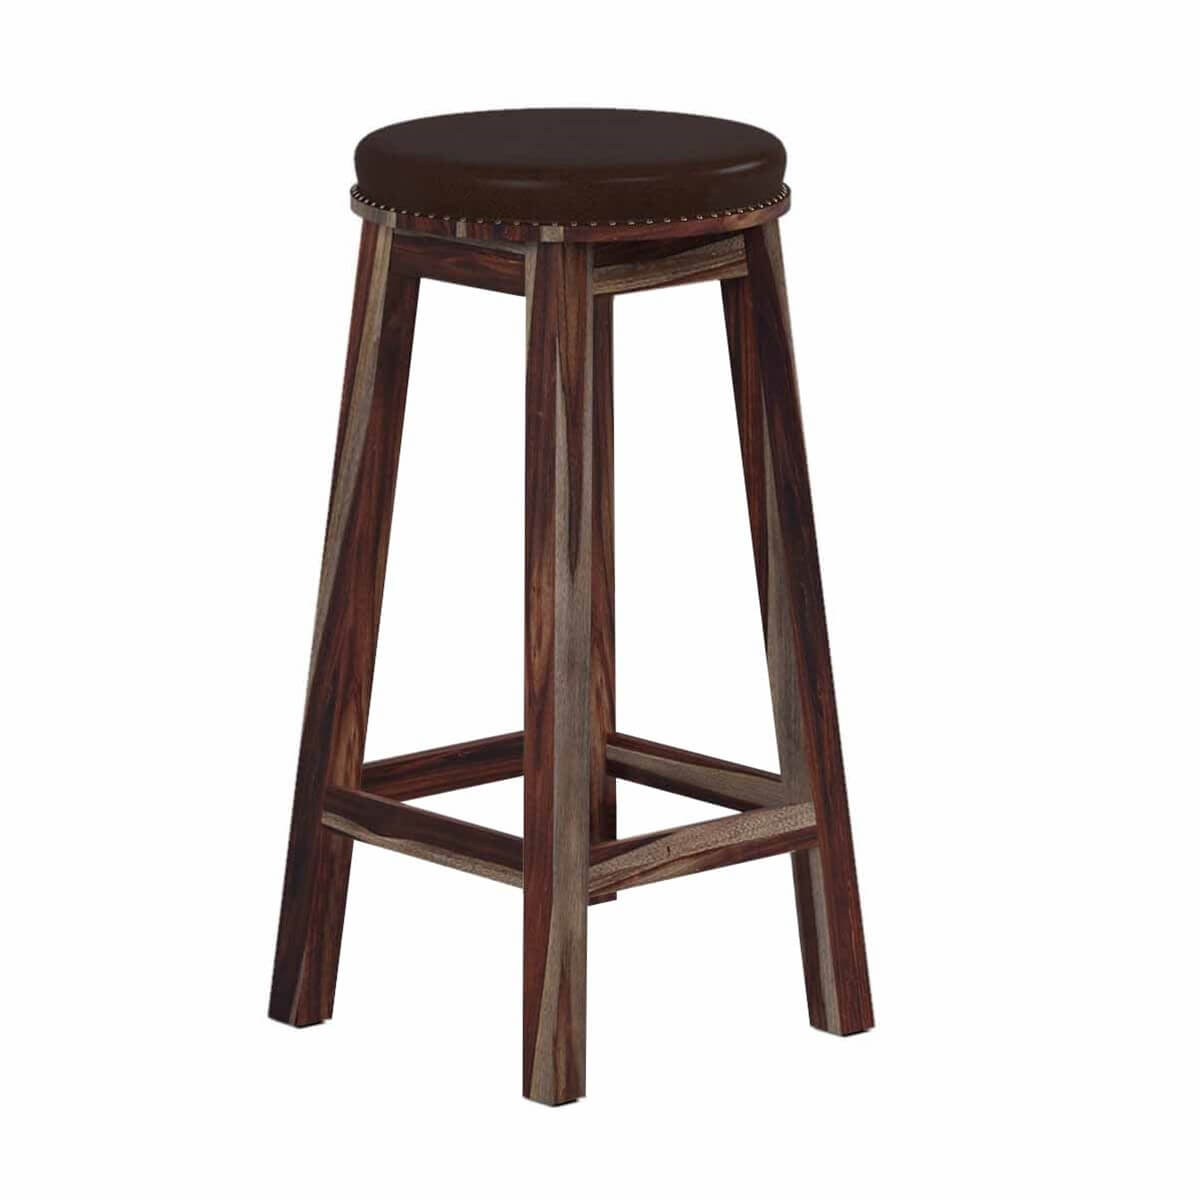 Classic Rustic Solid Wood amp Leather Upholstered Round Bar  : 8684 from www.sierralivingconcepts.com size 1200 x 1200 jpeg 231kB